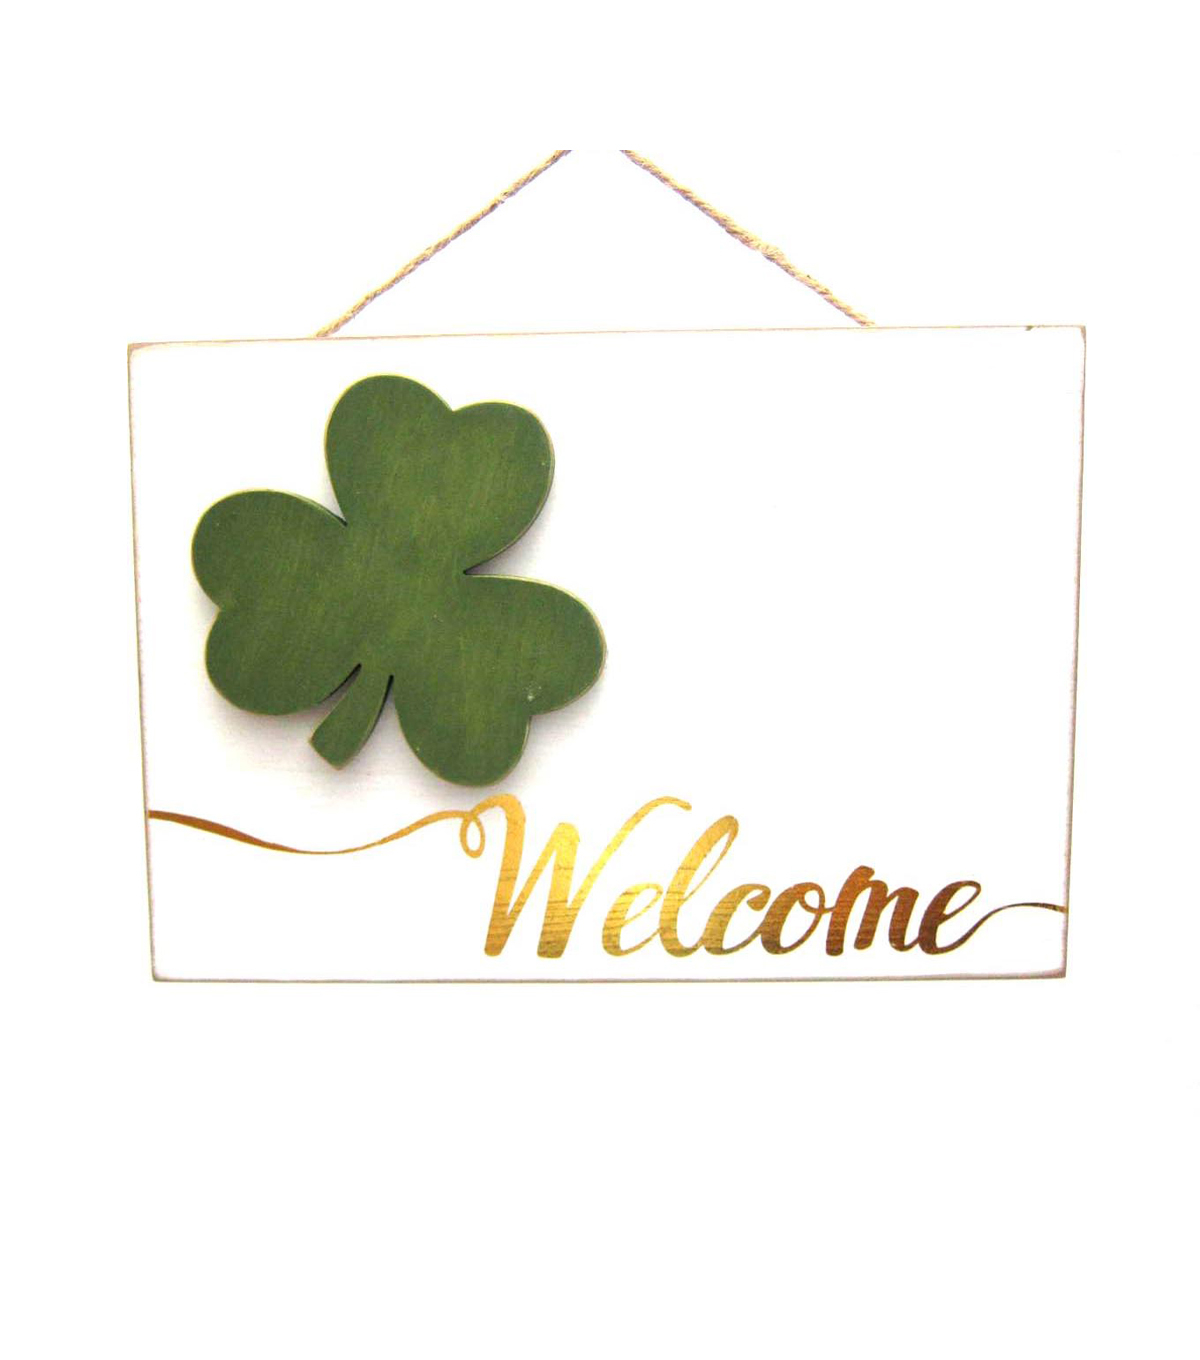 St. Patrick\u0027s Day Shamrock Welcome Wall Decor-White